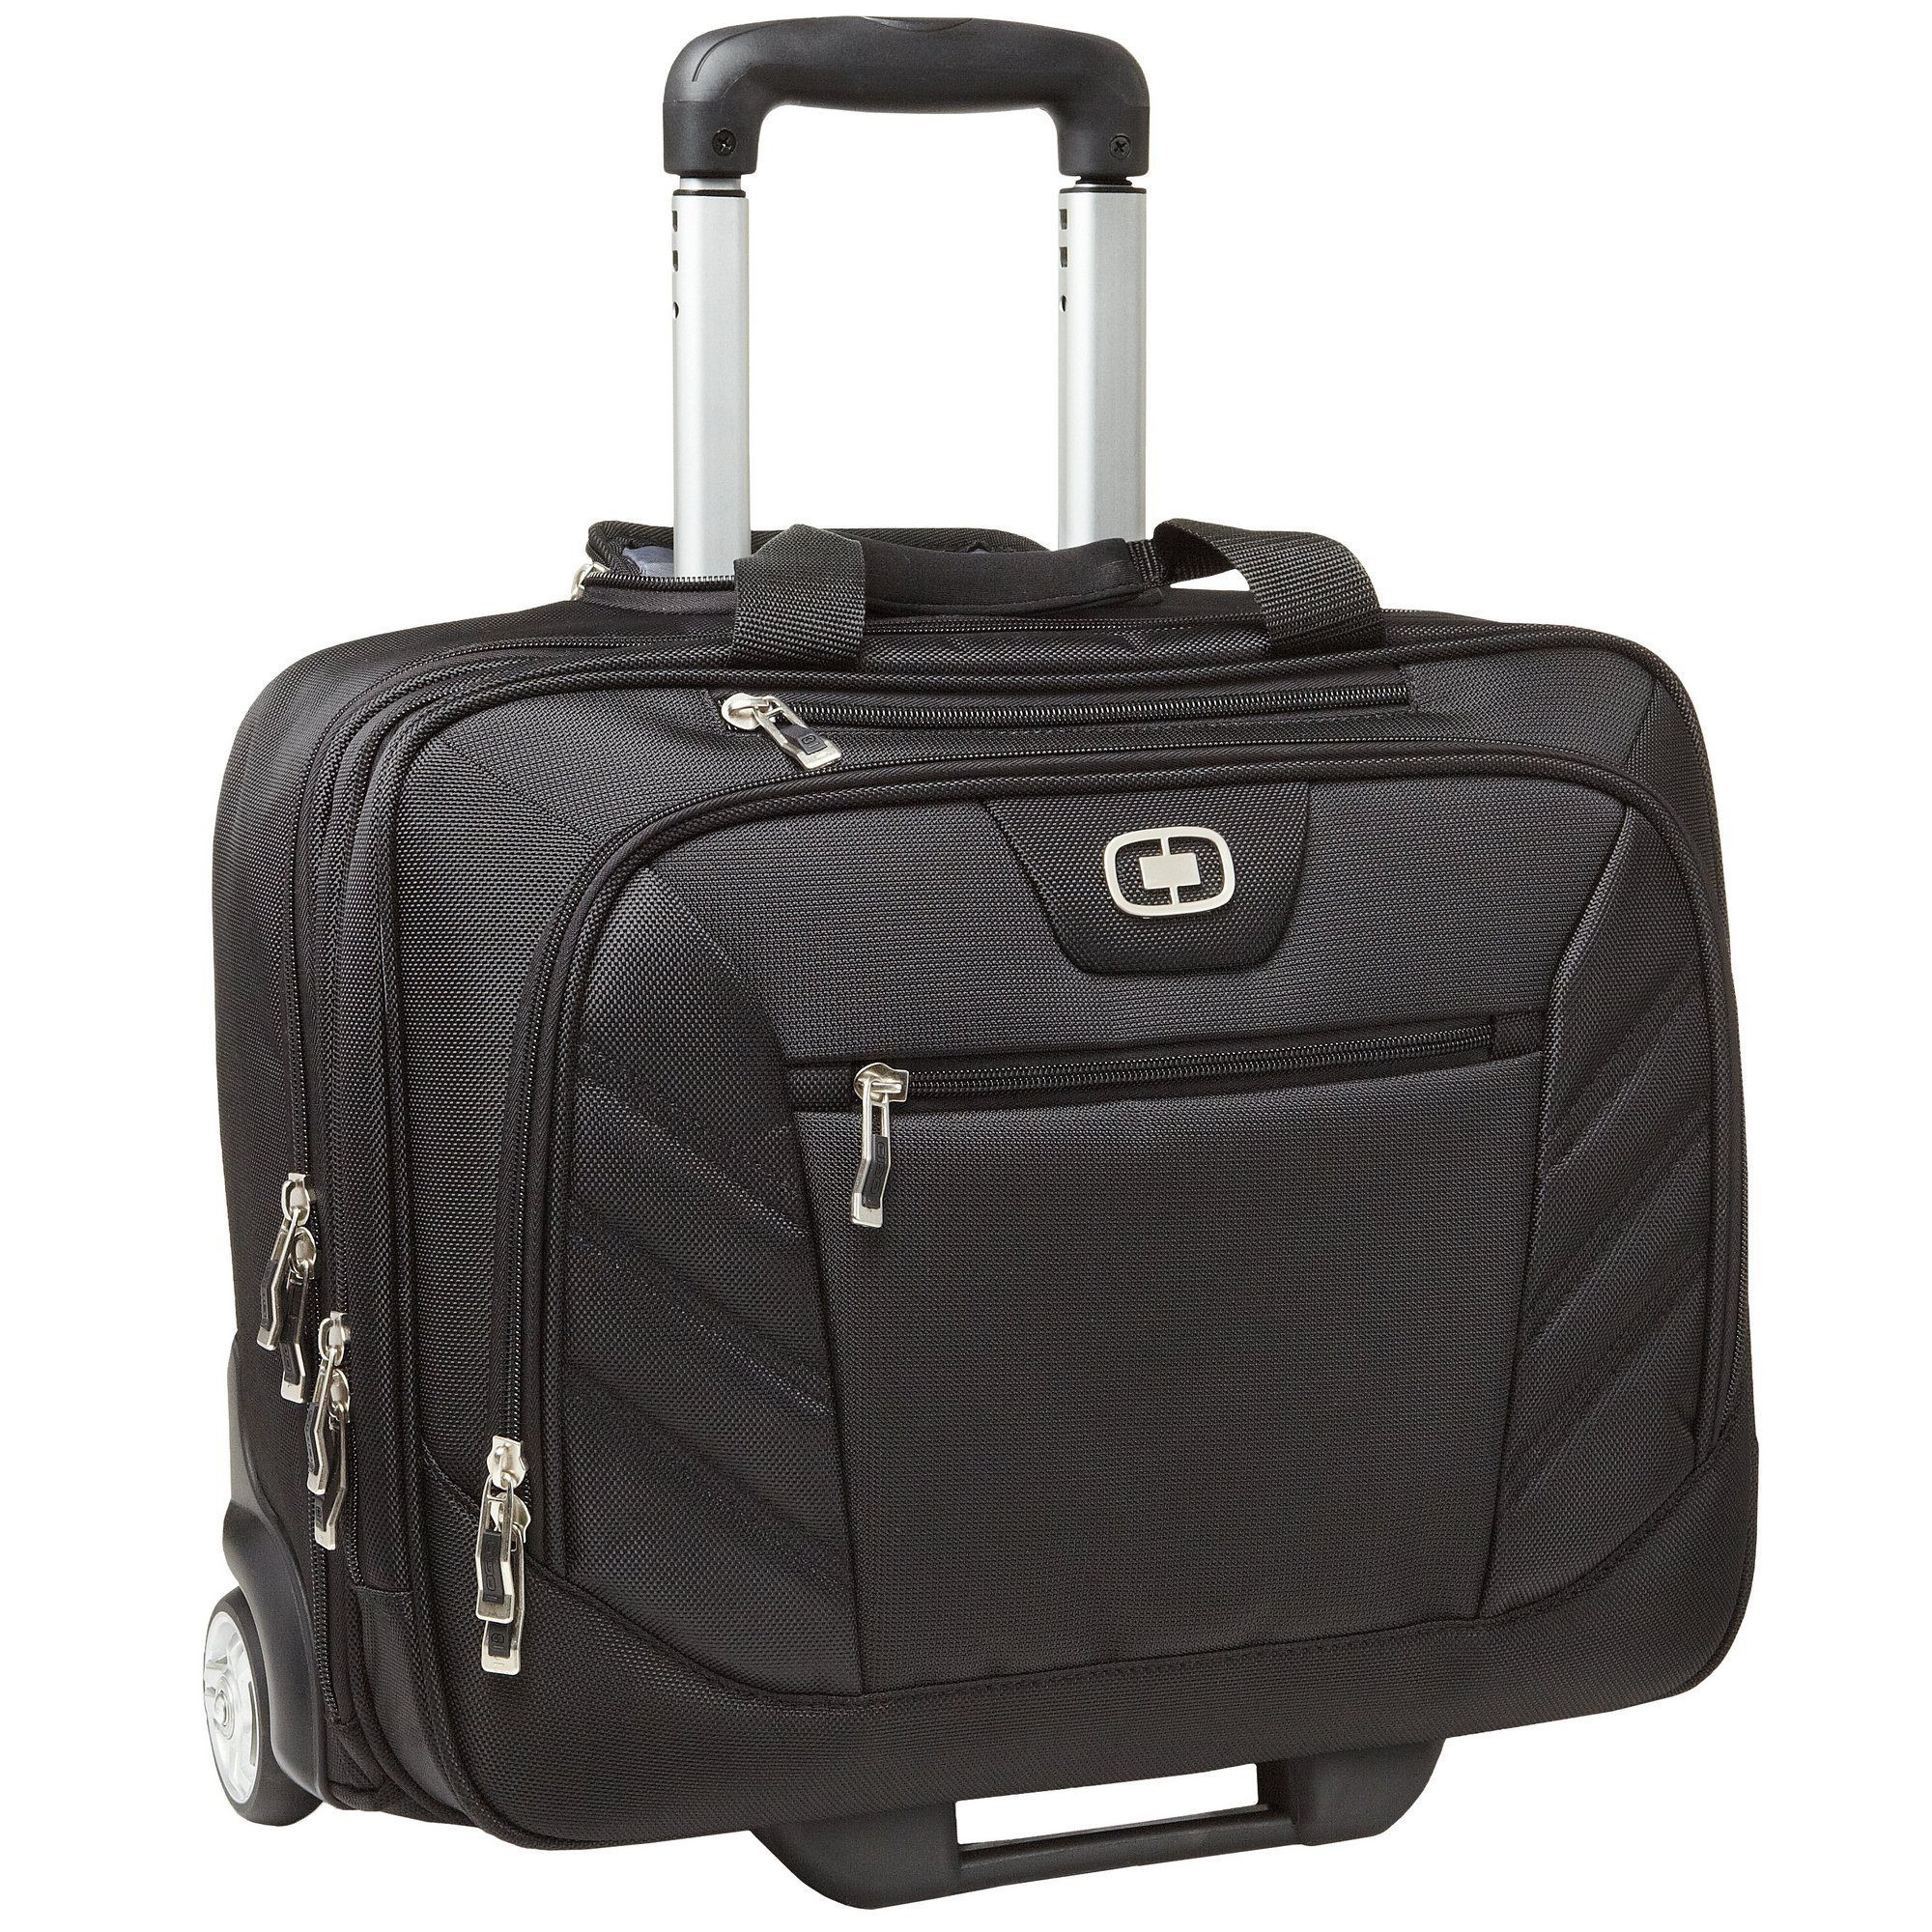 OGIO 417018 - Black Laptop/Tablet Work Briefcase/Travel Bag